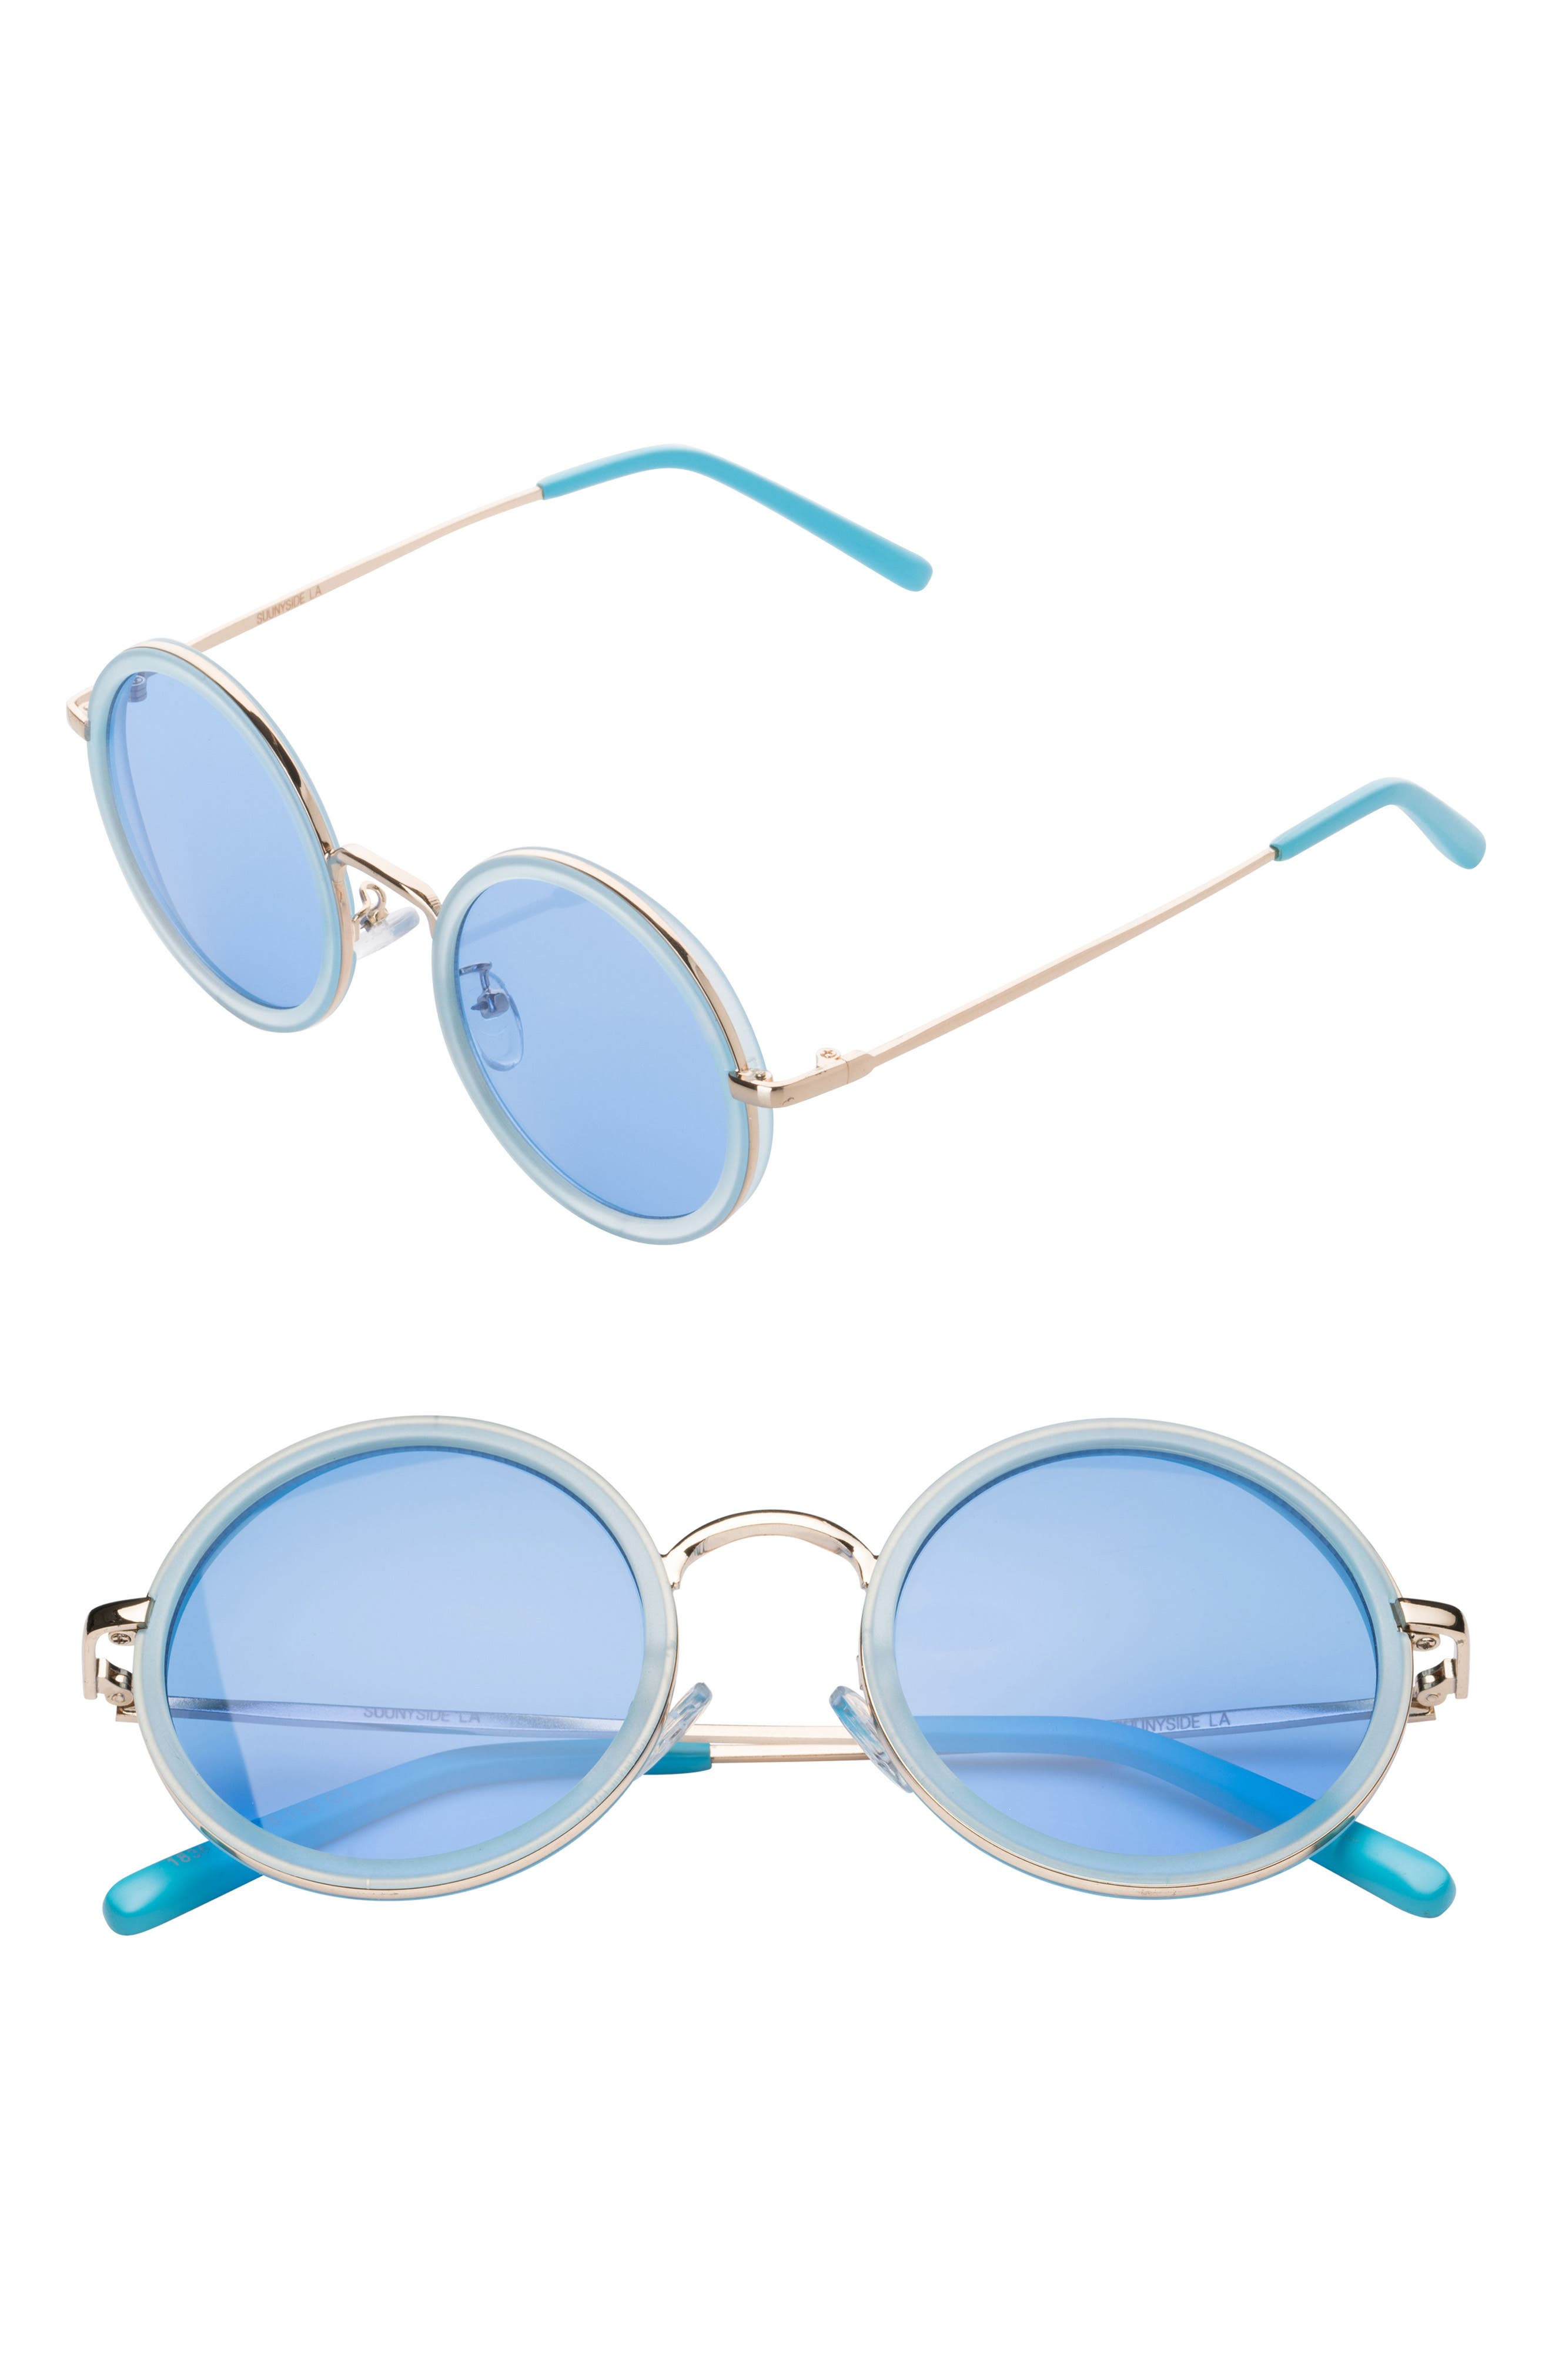 48mm Round Sunglasses,                             Main thumbnail 1, color,                             Blue/ Silver